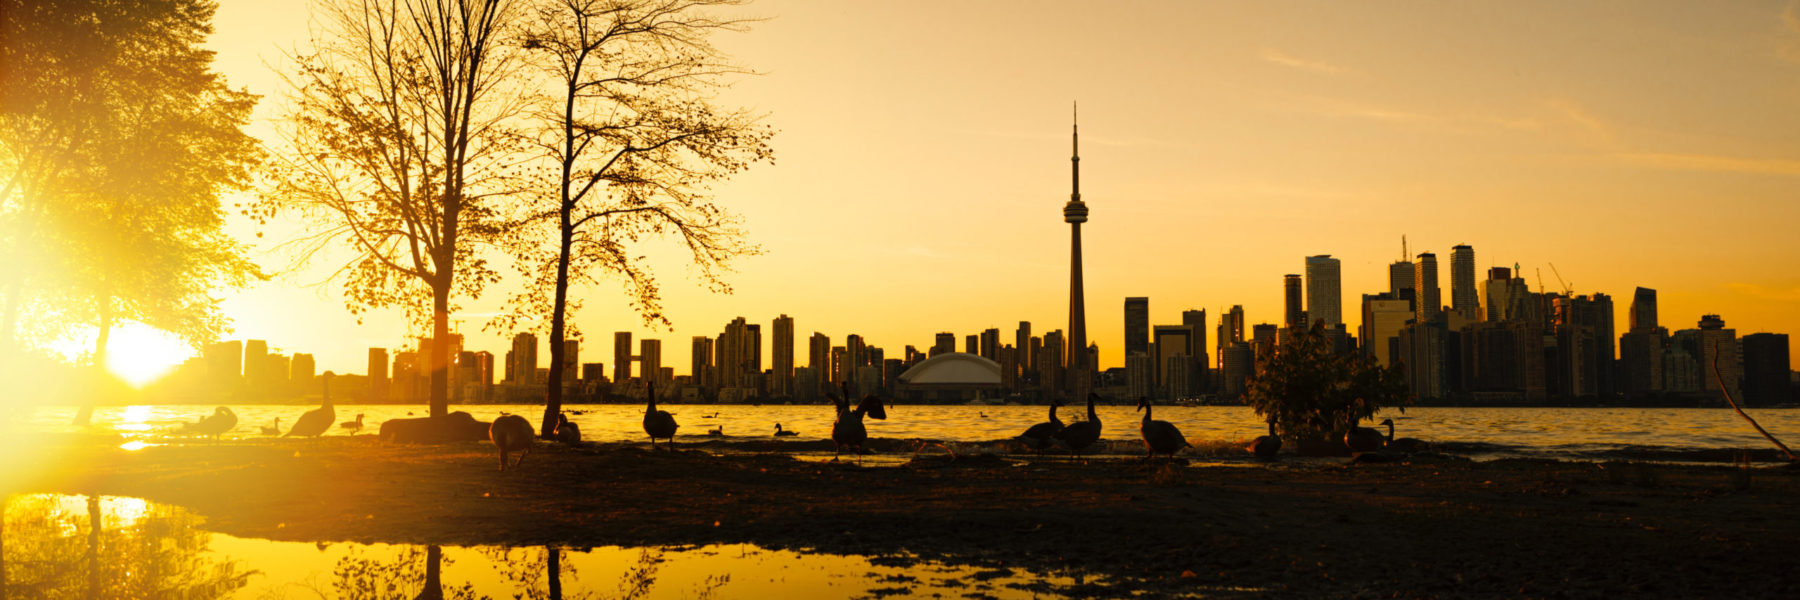 Scenic view of Toronto skyline at dawn